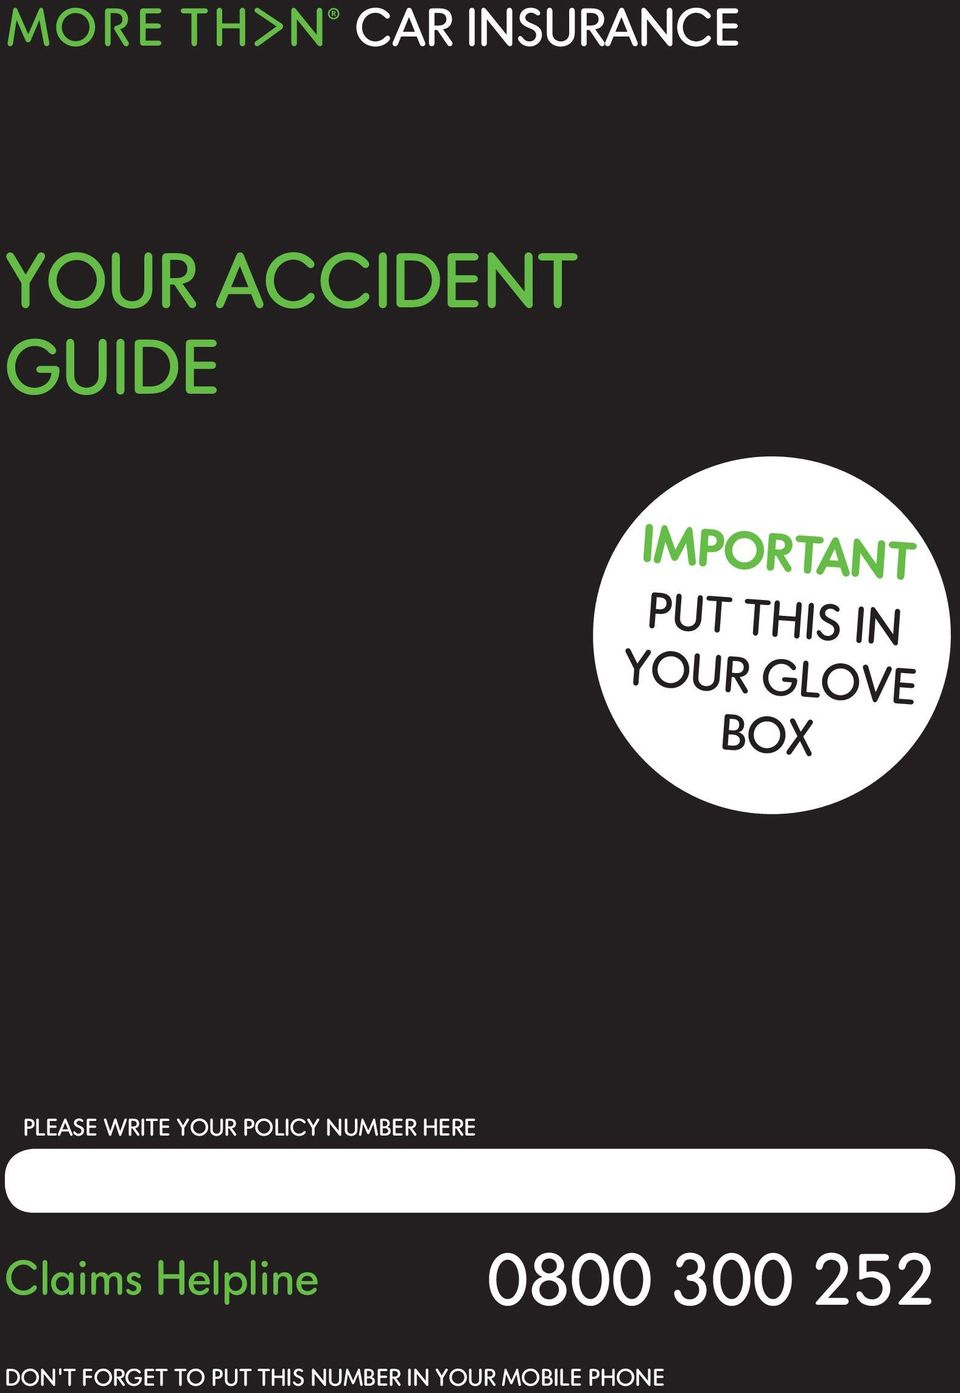 Your Accident Guide Car Insurance Important Put This In Your Glove